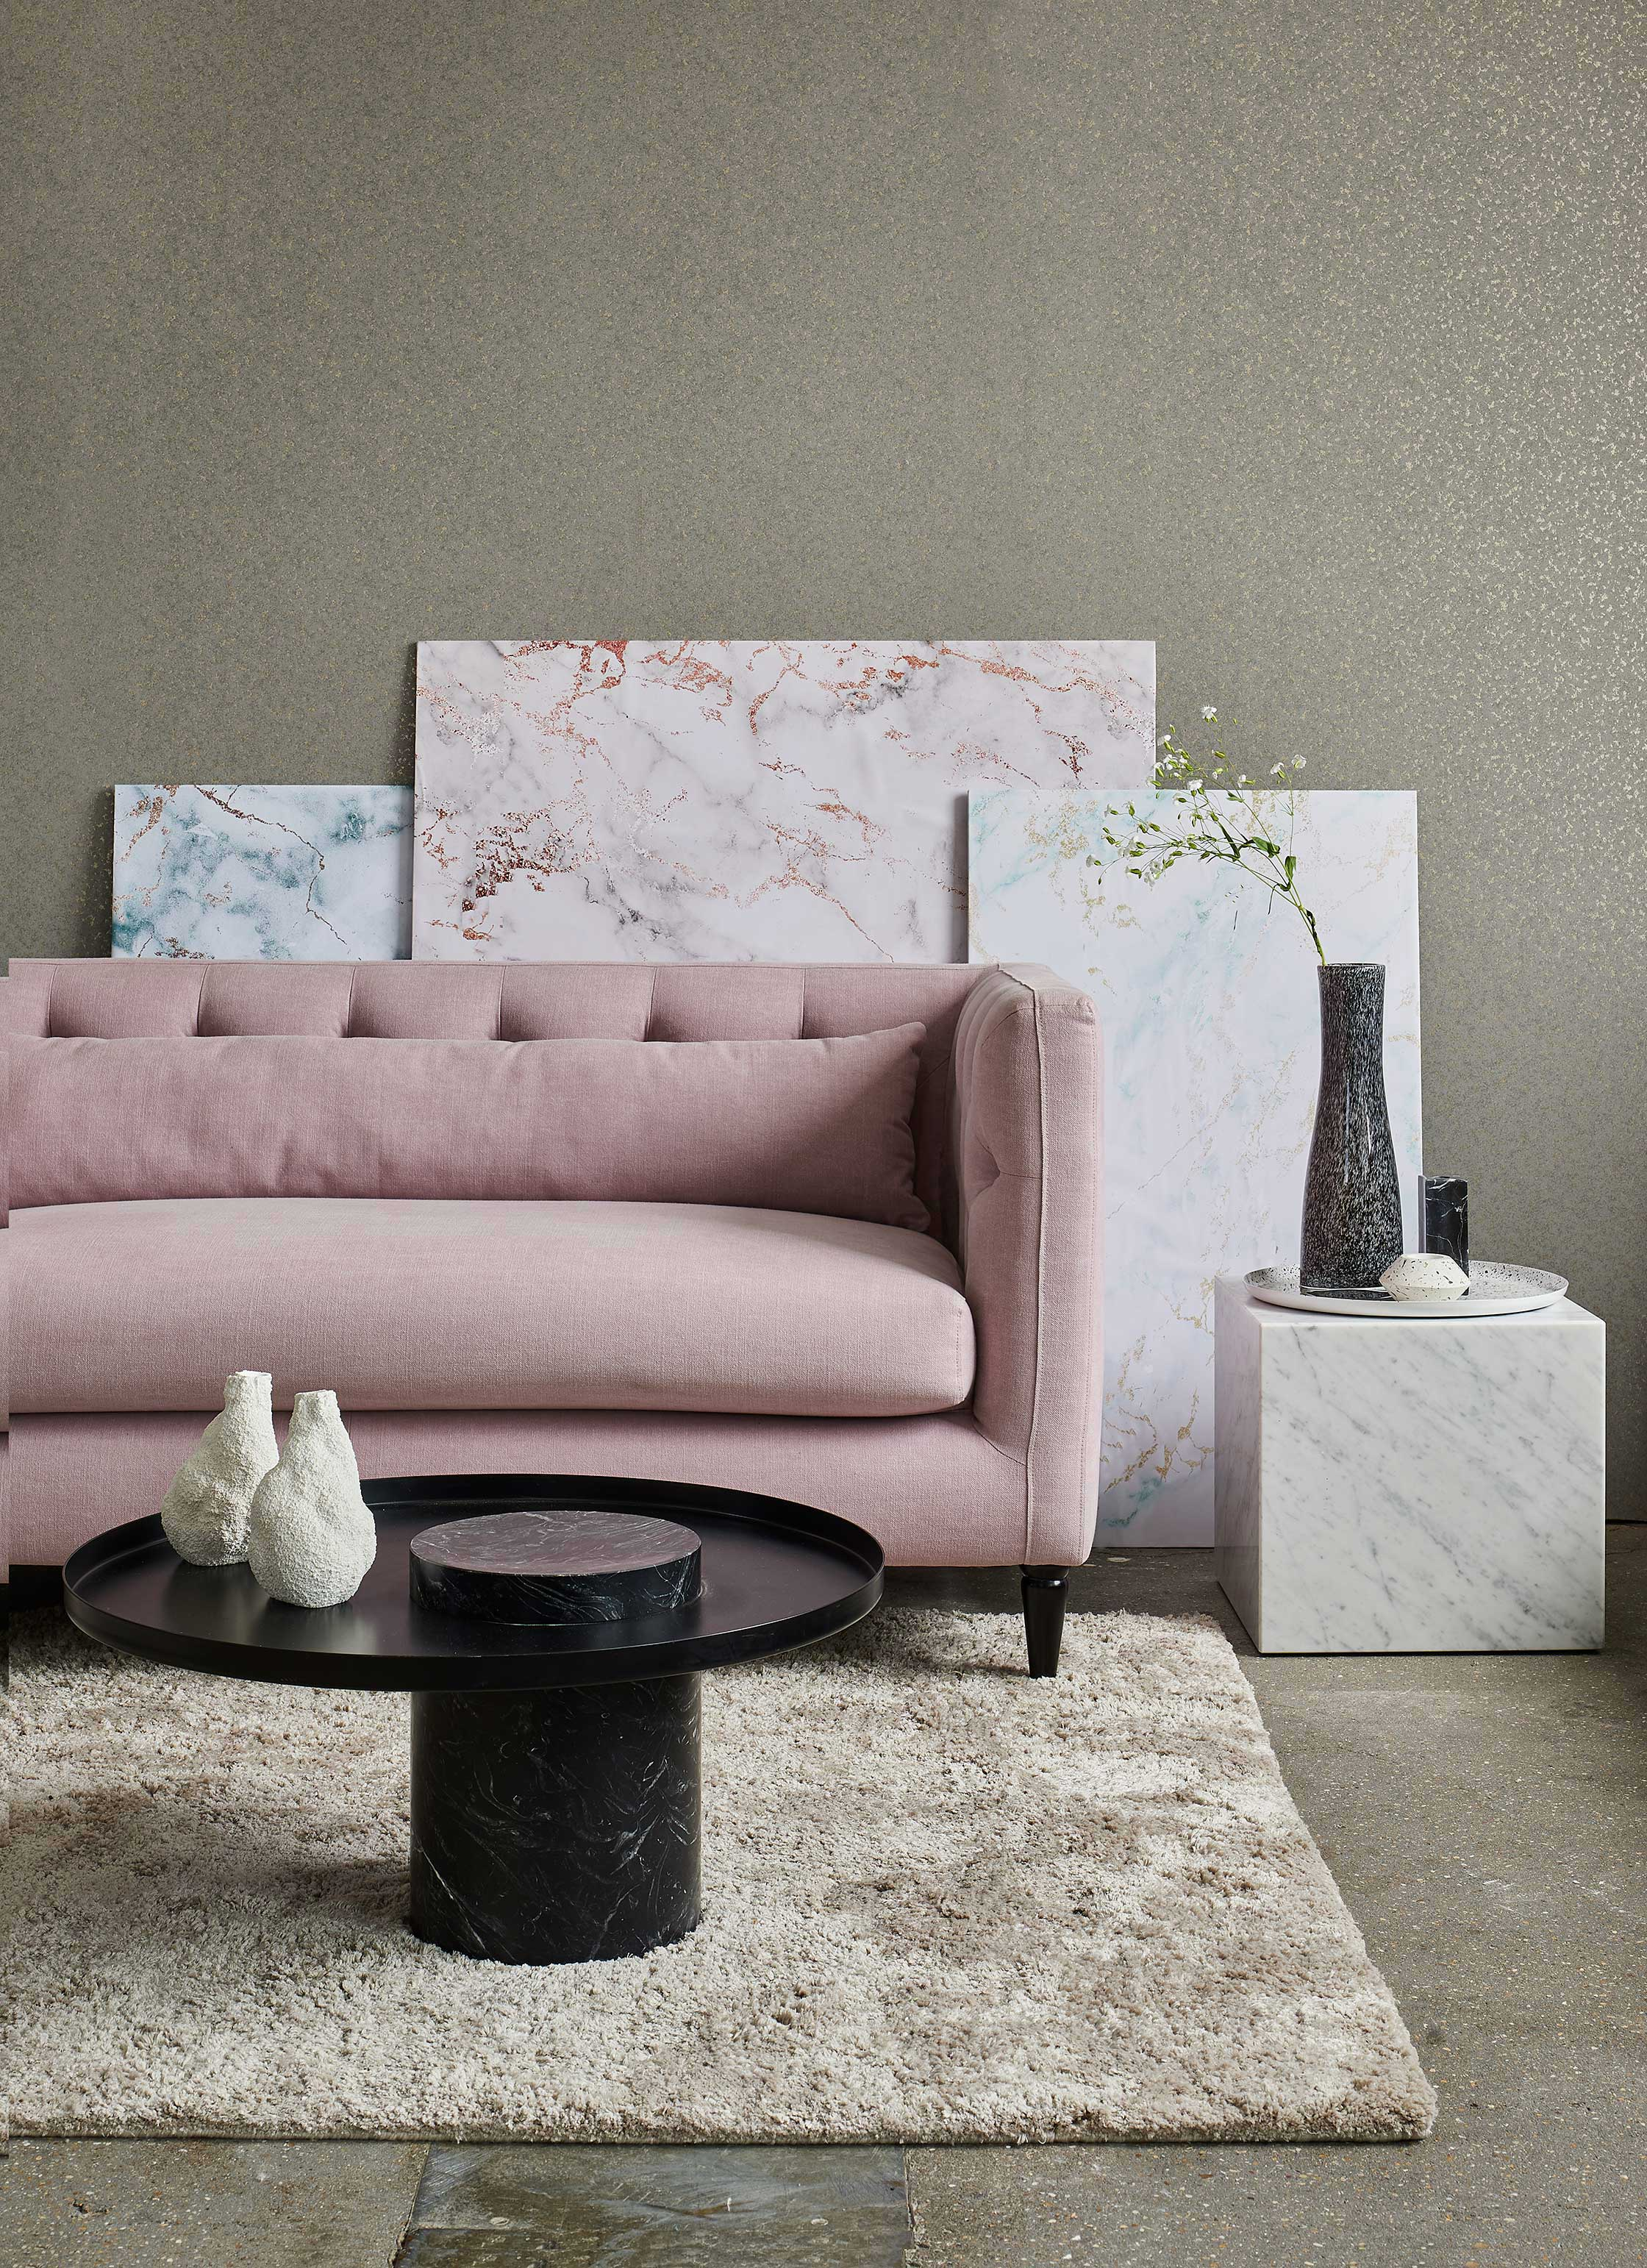 London based Interior Stylist, Pippa Jameson, Shooting for DFS